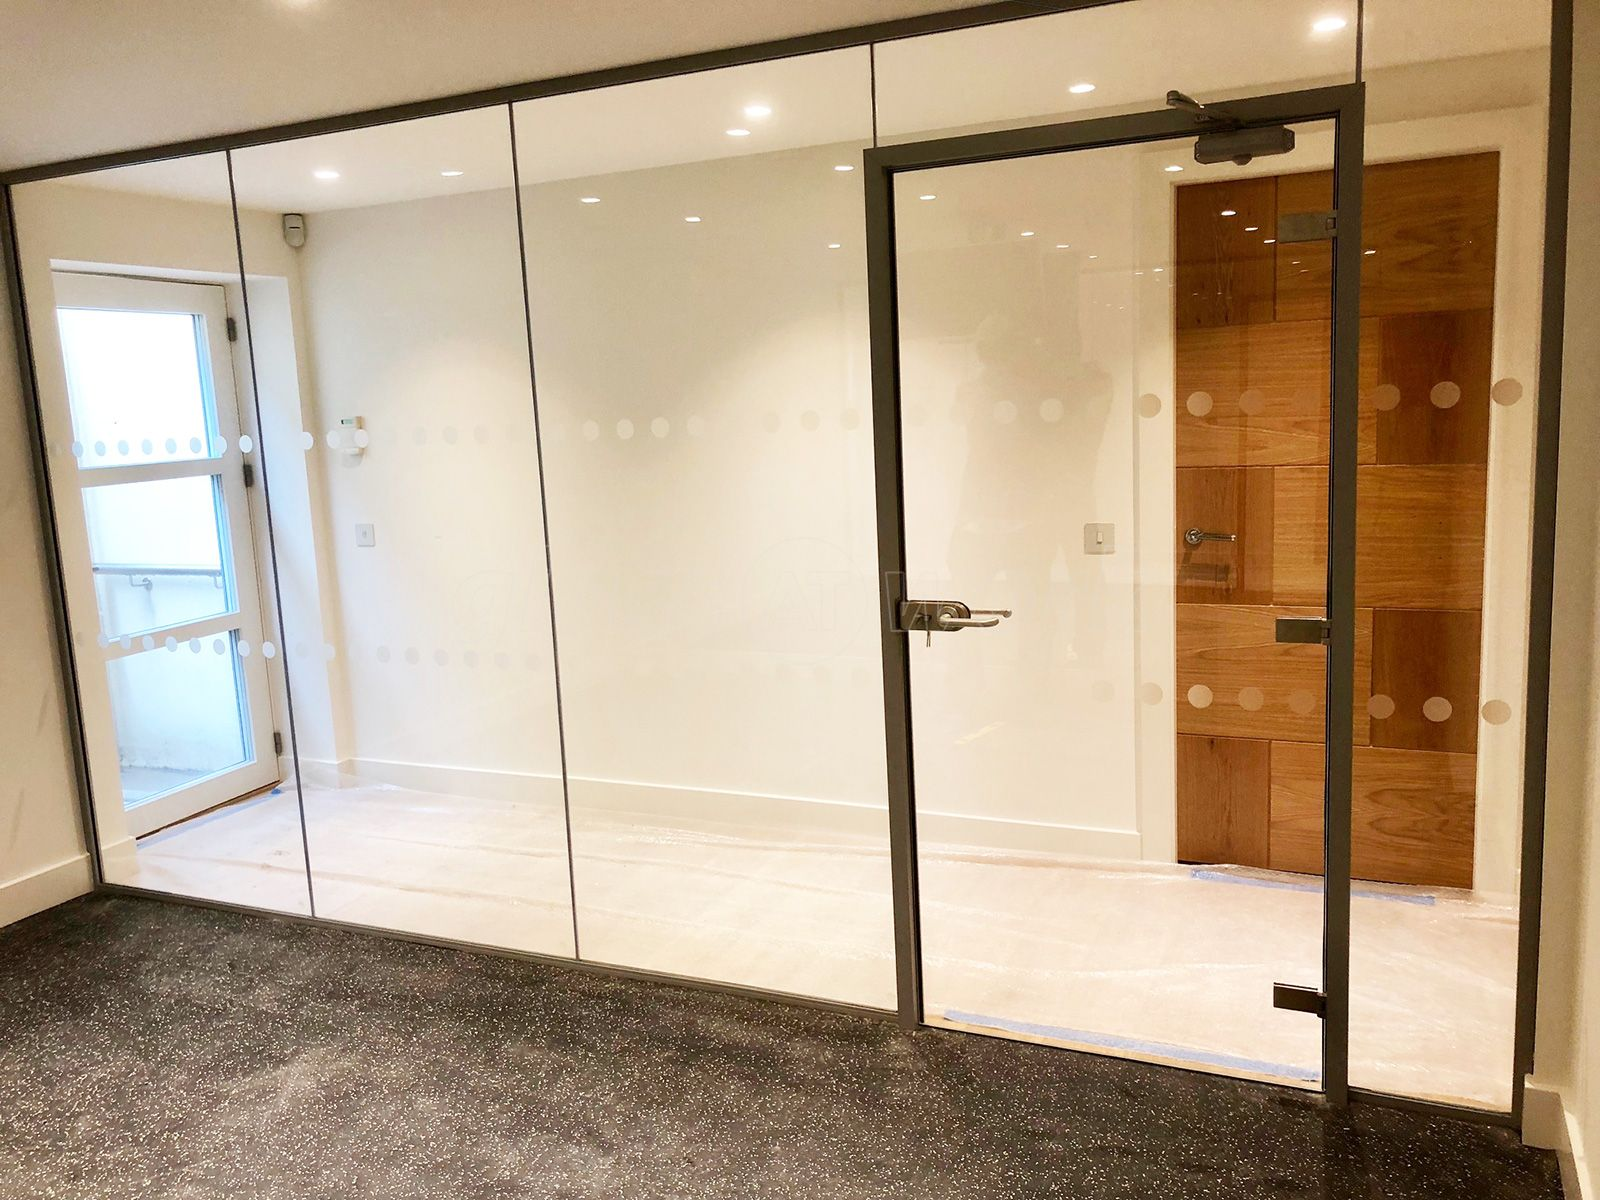 30 Minutes Fire Rated Glass Partitioning Wall And Door For